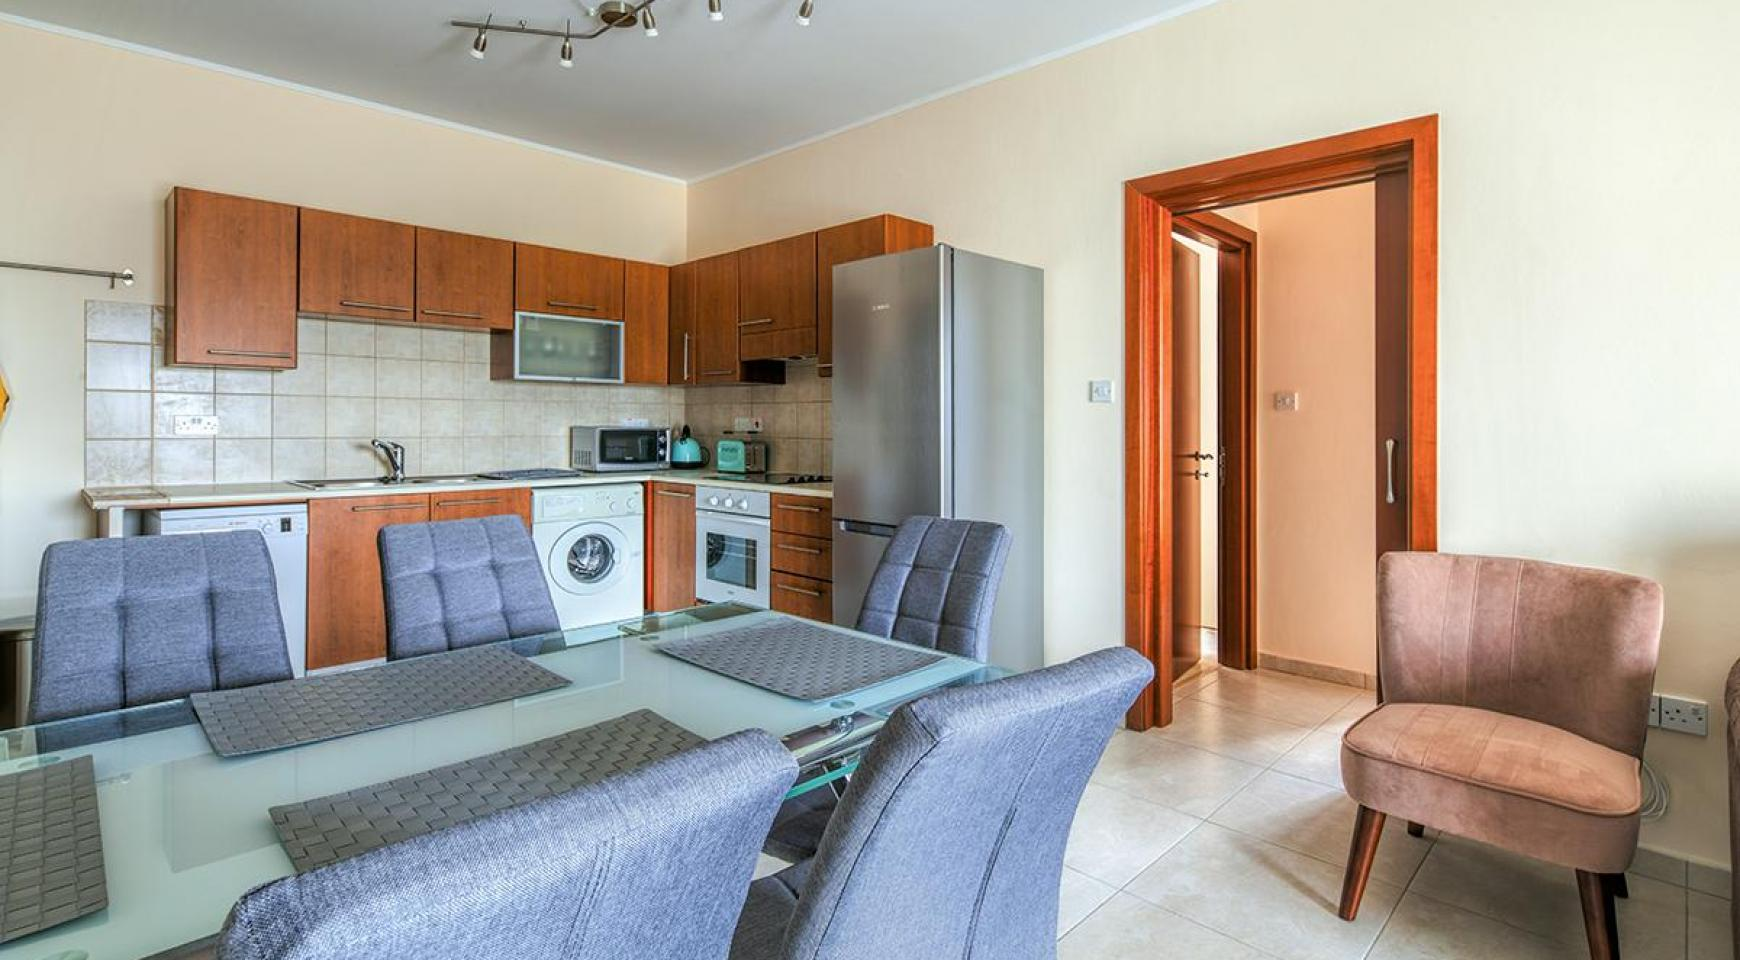 Luxury 2 Bedroom Apartment Mesogios Iris 301 in the Tourist area near the Beach - 2